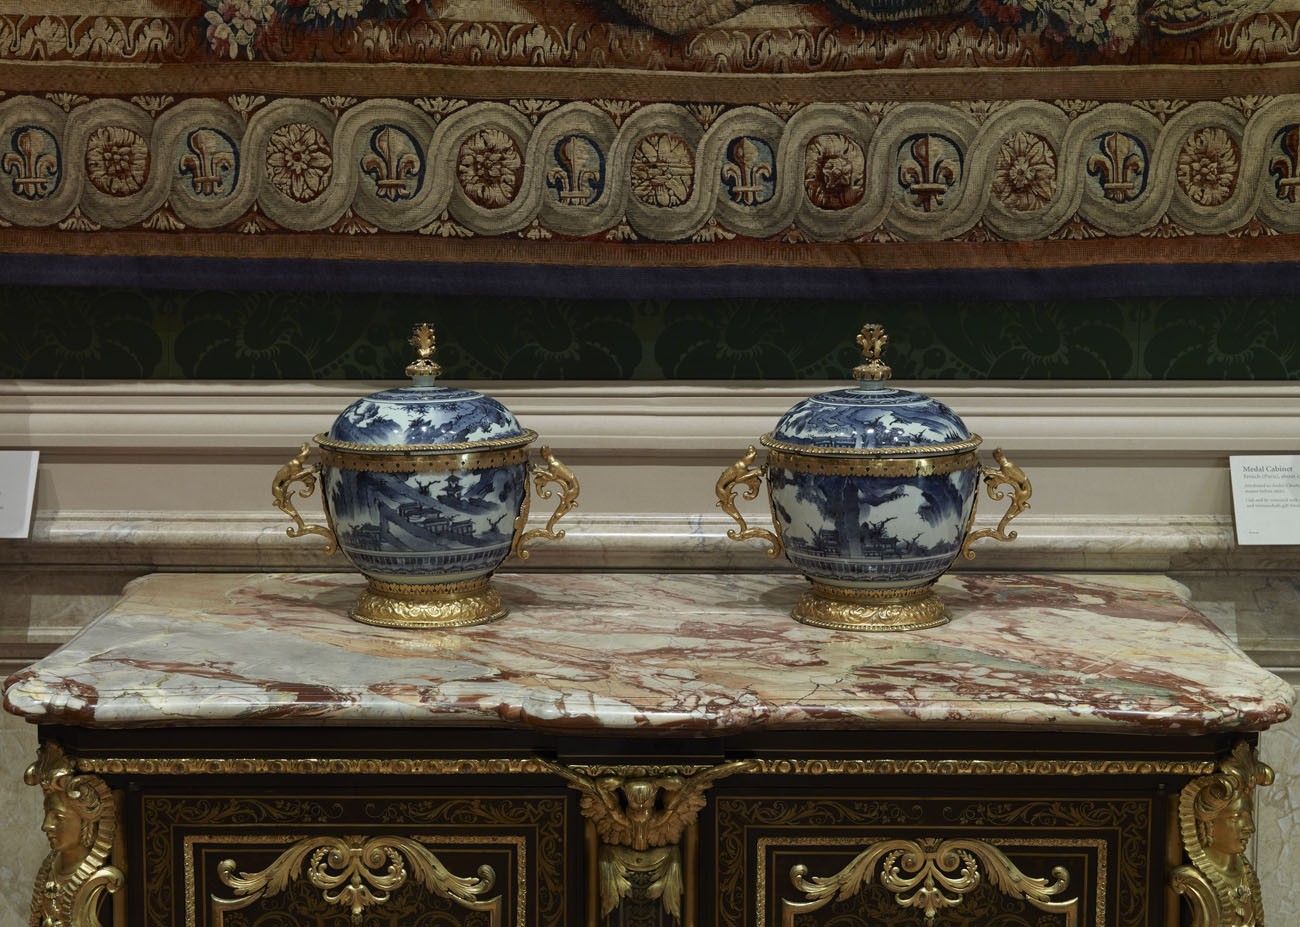 Pair of lidded and mounted bowls